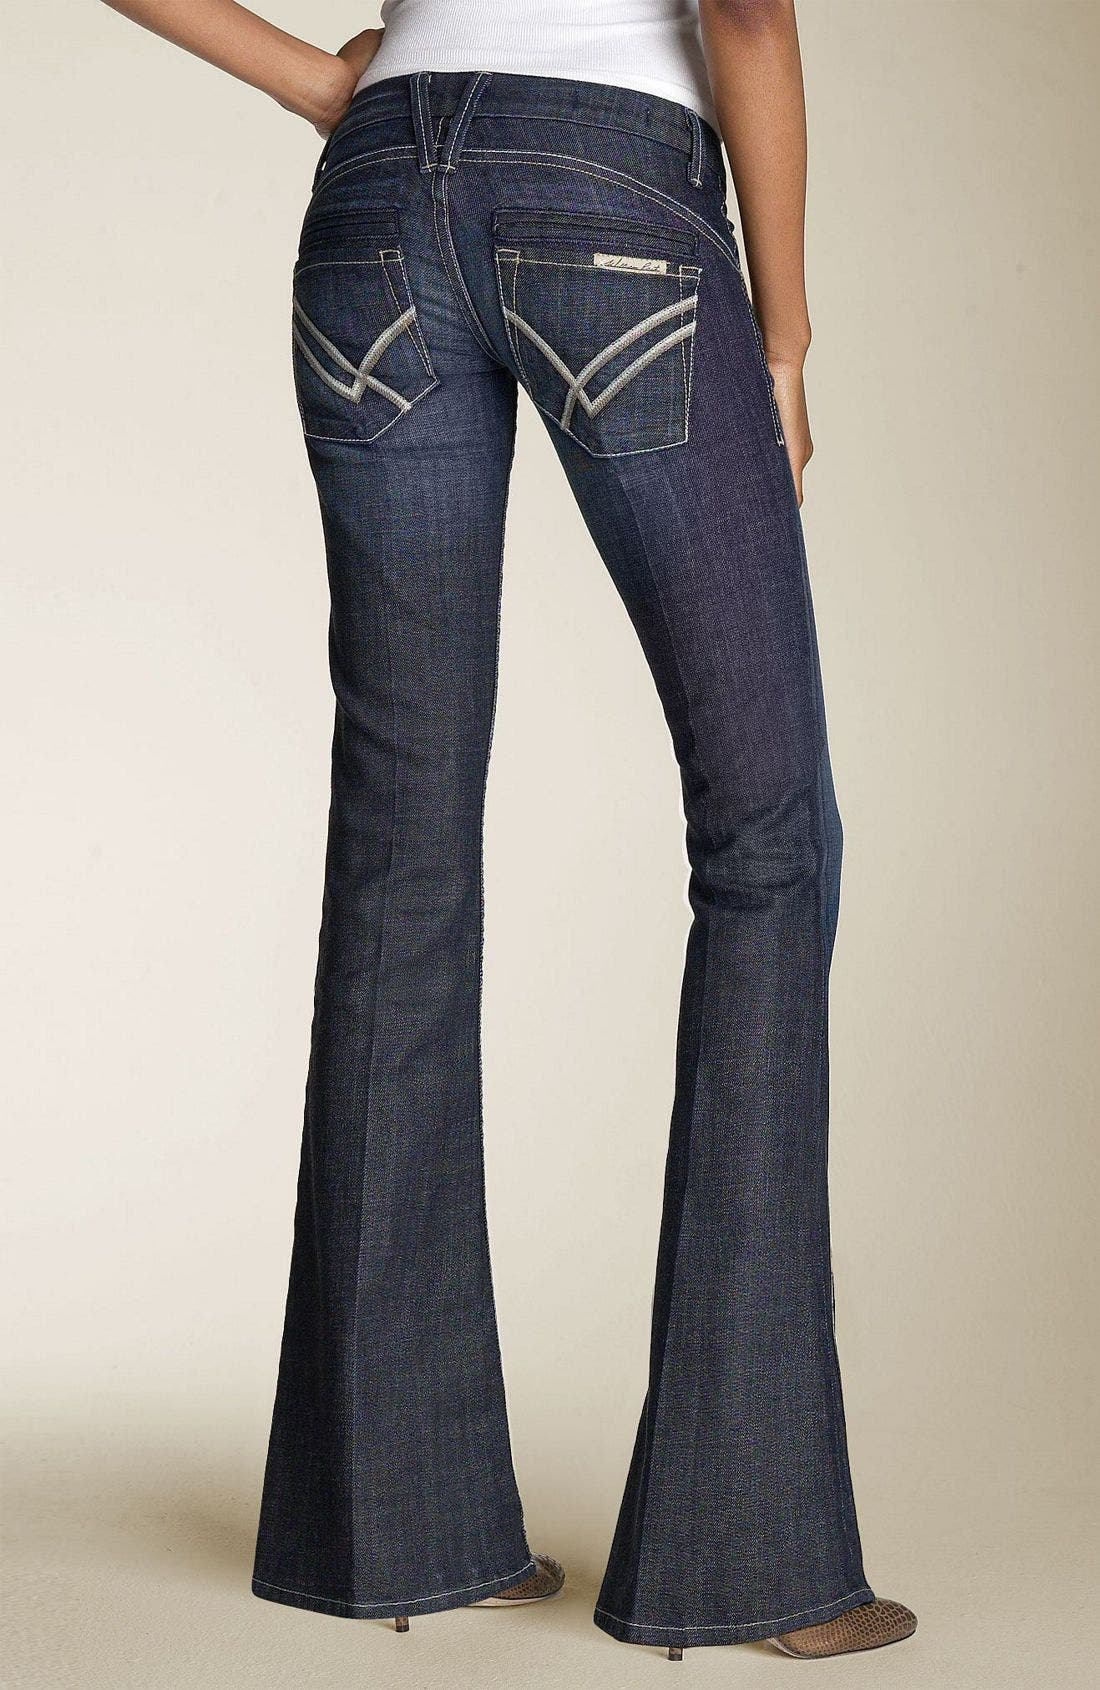 'Savoy' Ultra Low Rise Stretch Jeans,                             Alternate thumbnail 2, color,                             499